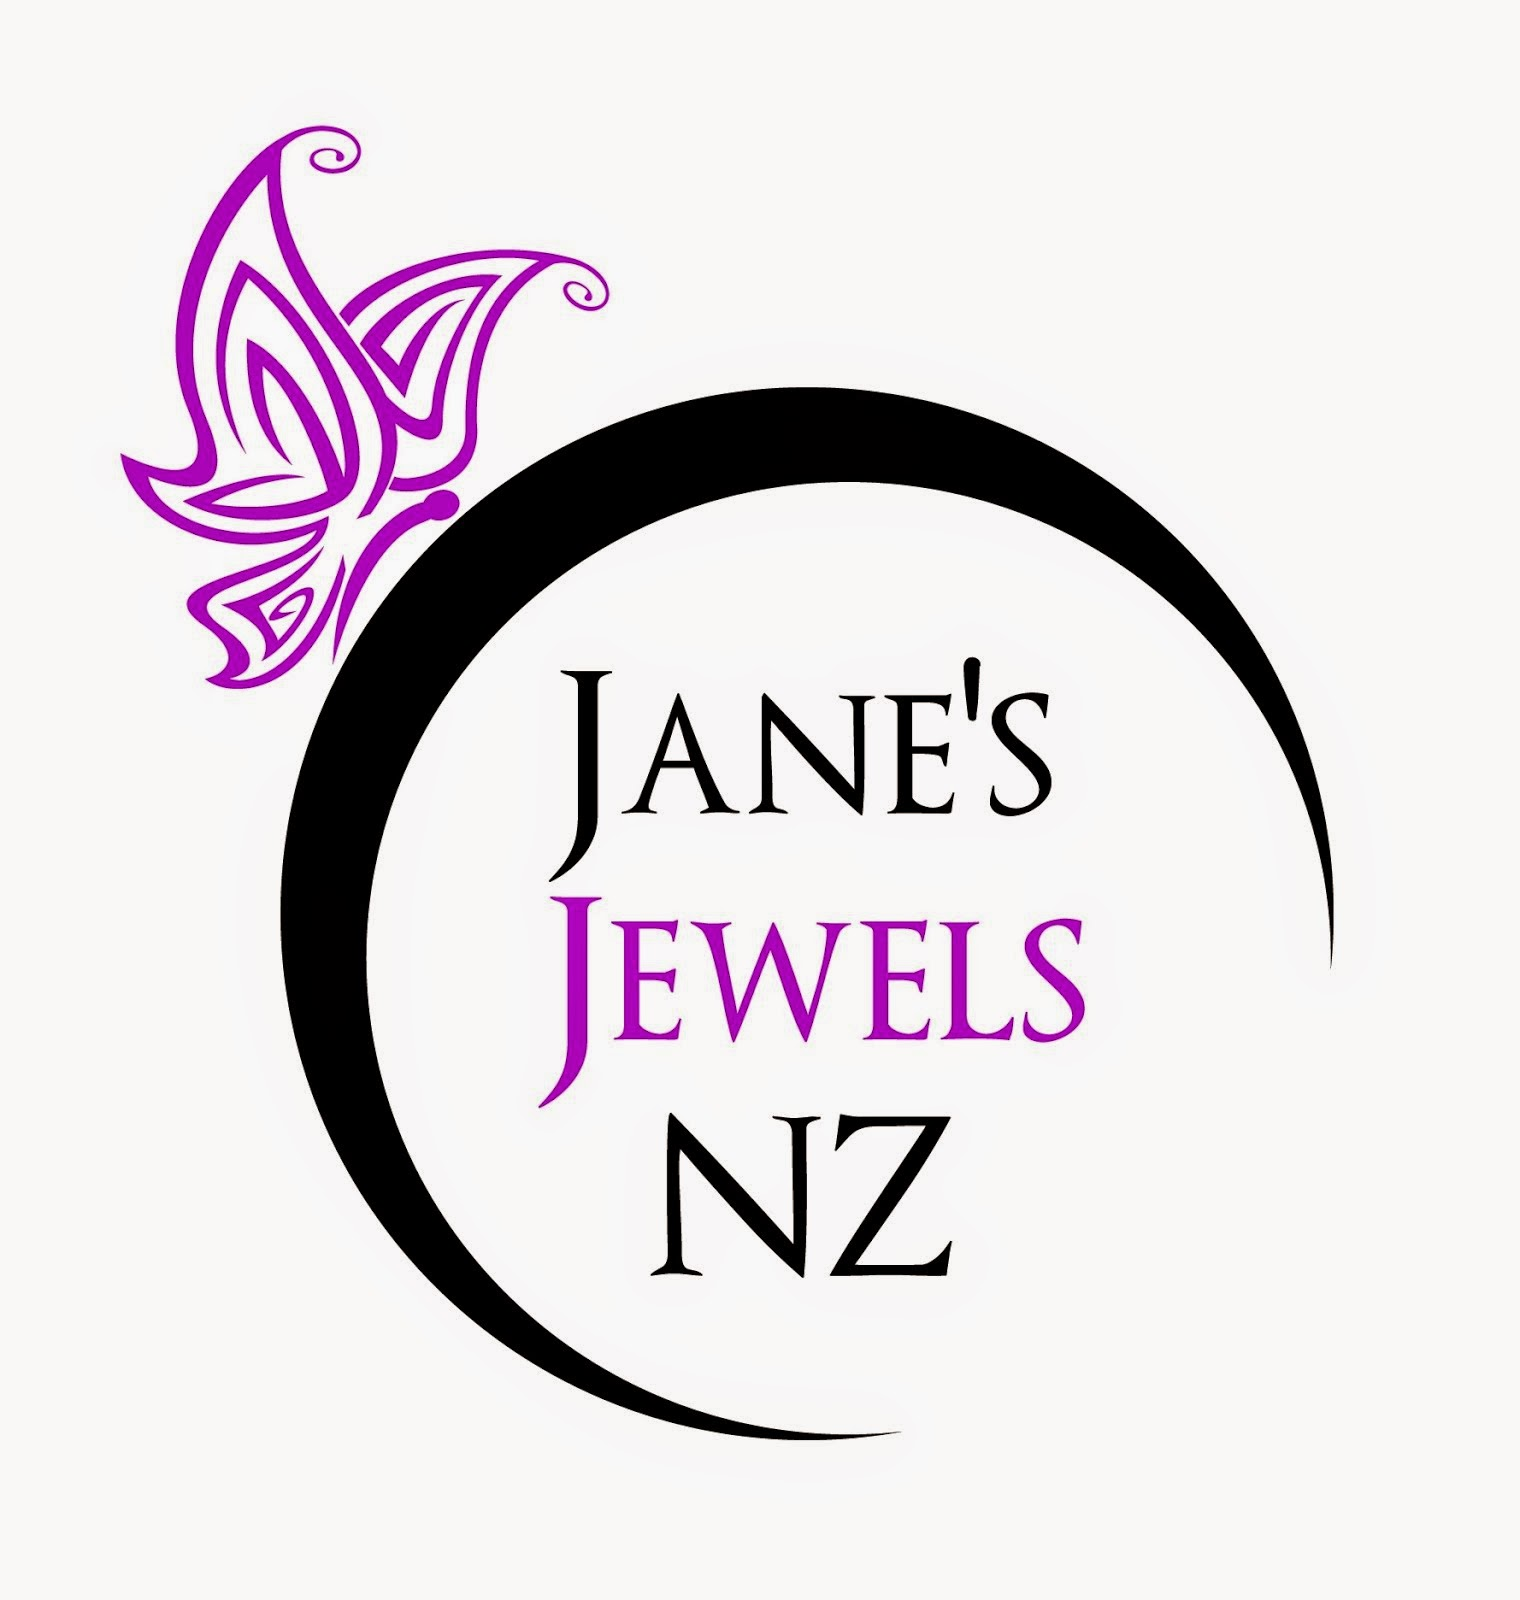 Jane's Jewels NZ